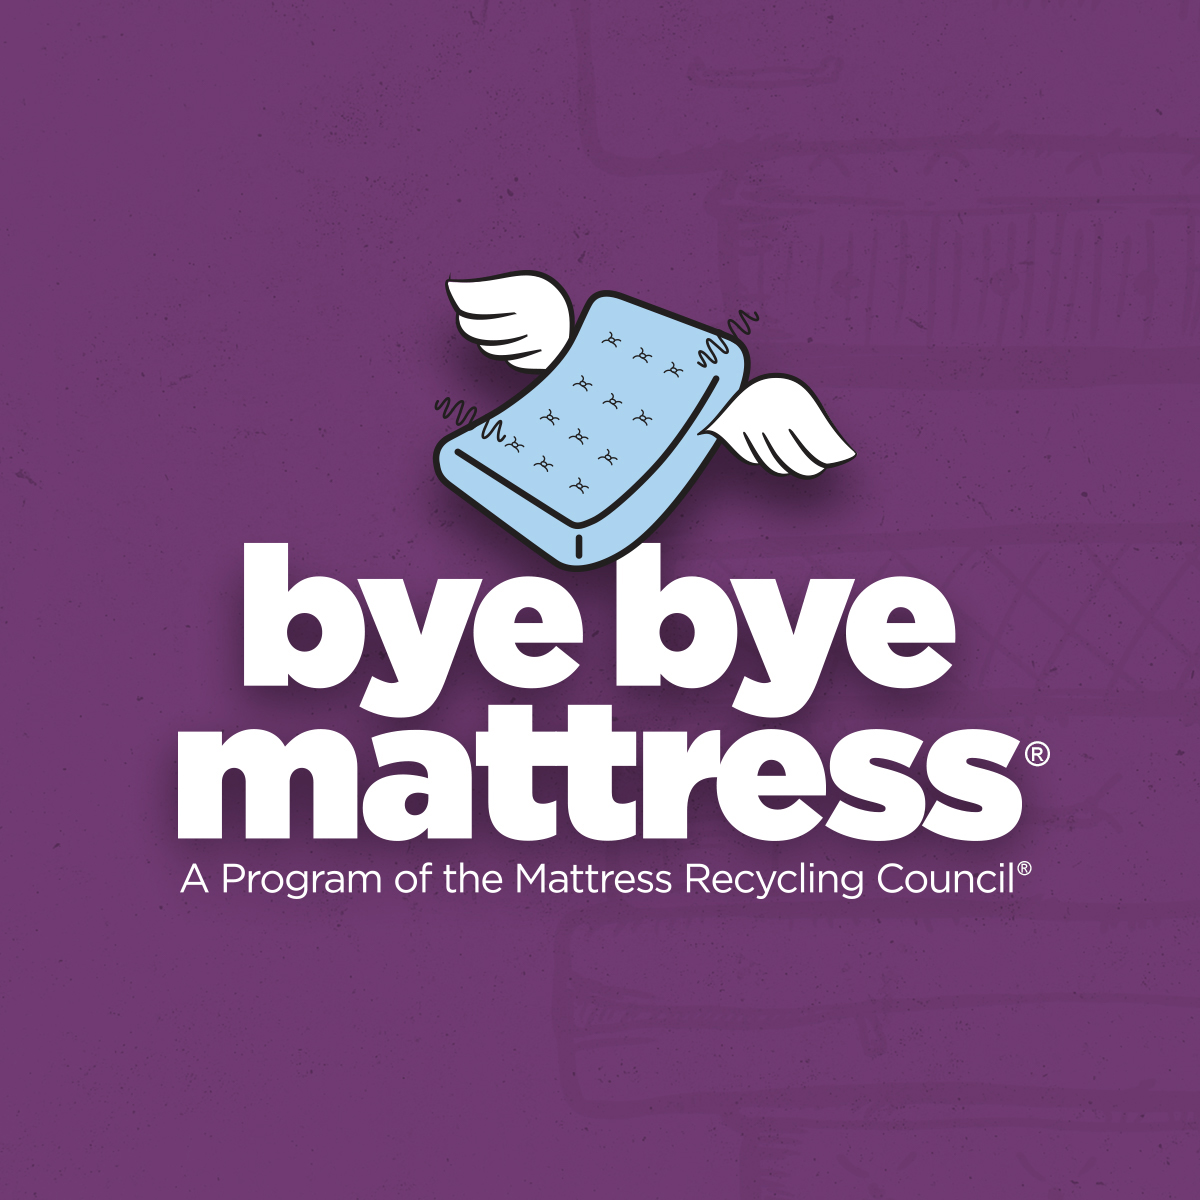 home bye bye mattress a program of the mattress recycling council